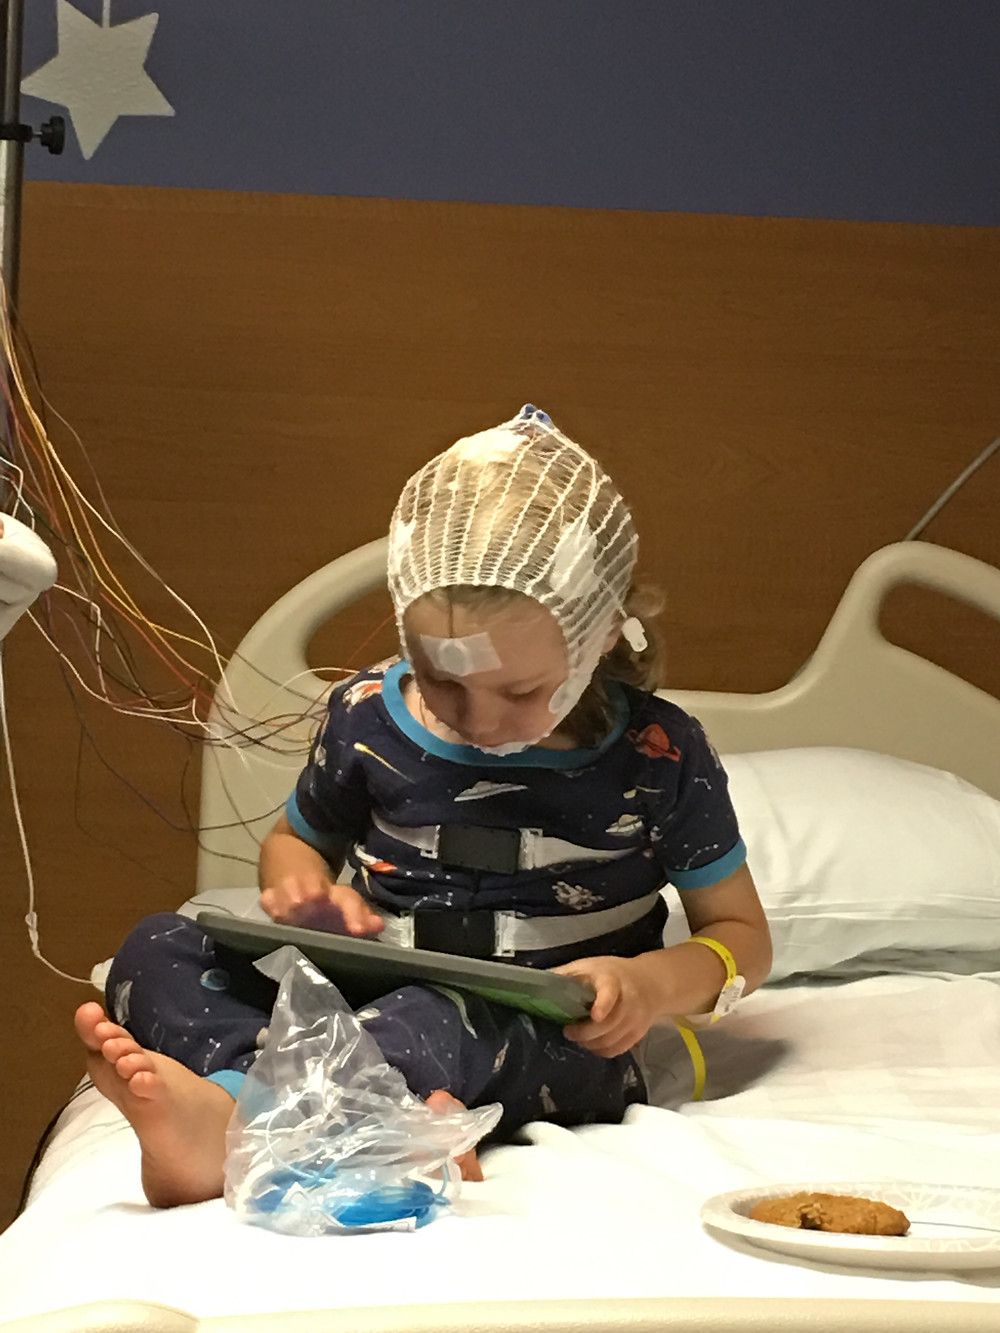 little boy hooked up to electrodes for sleep study. the boy sits on a hospital bed, looking down at an ipad with a cookie nearby.